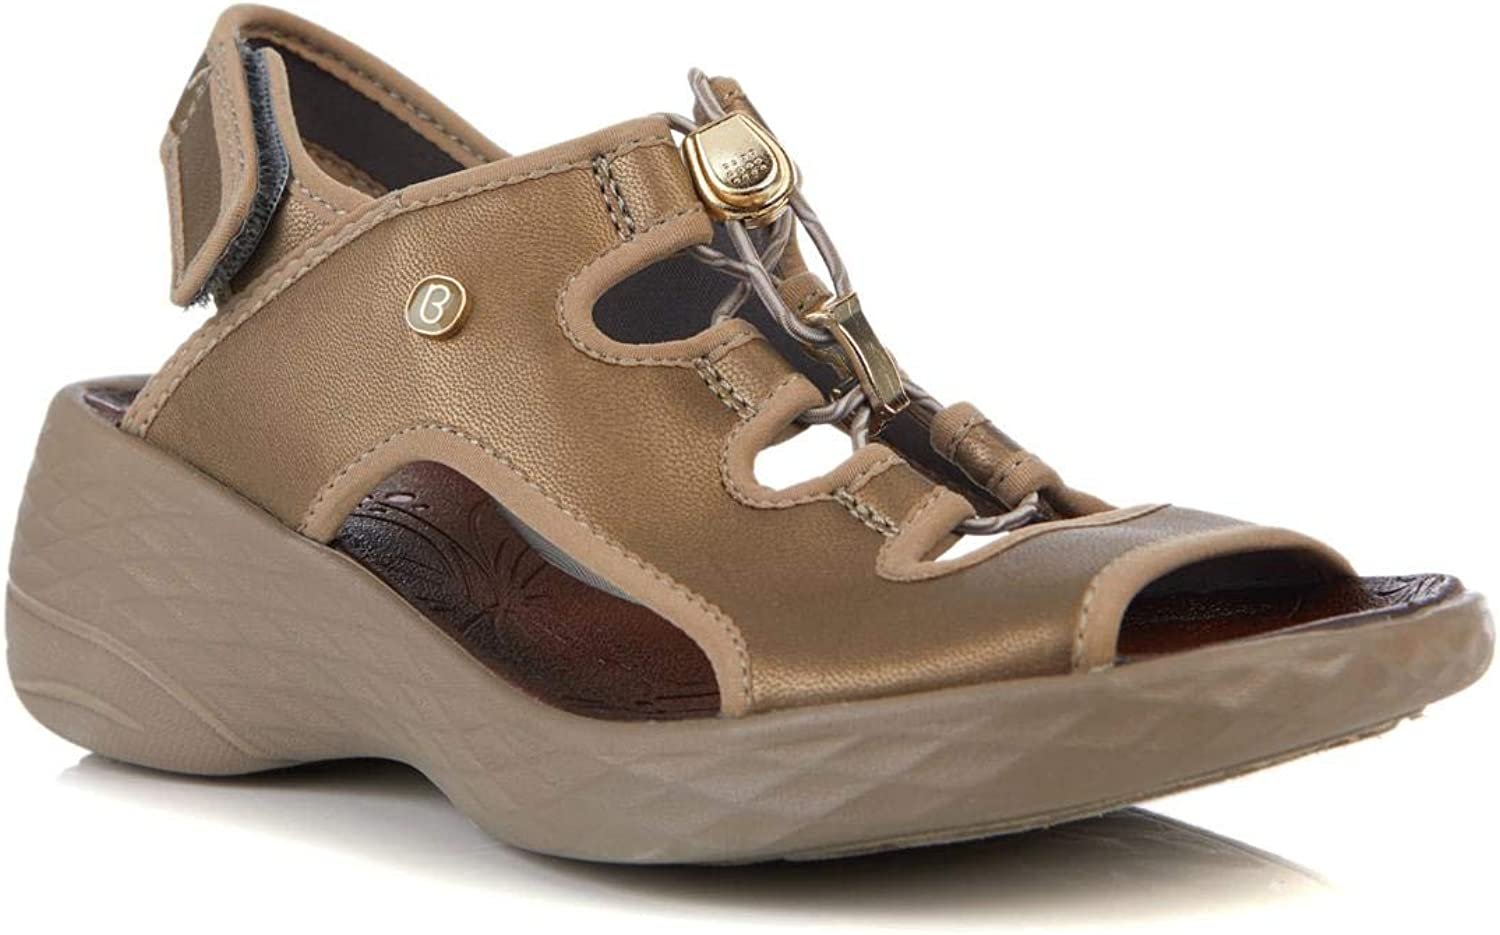 BZees Womens Juicy Open Toe Casual Ankle Strap Sandals